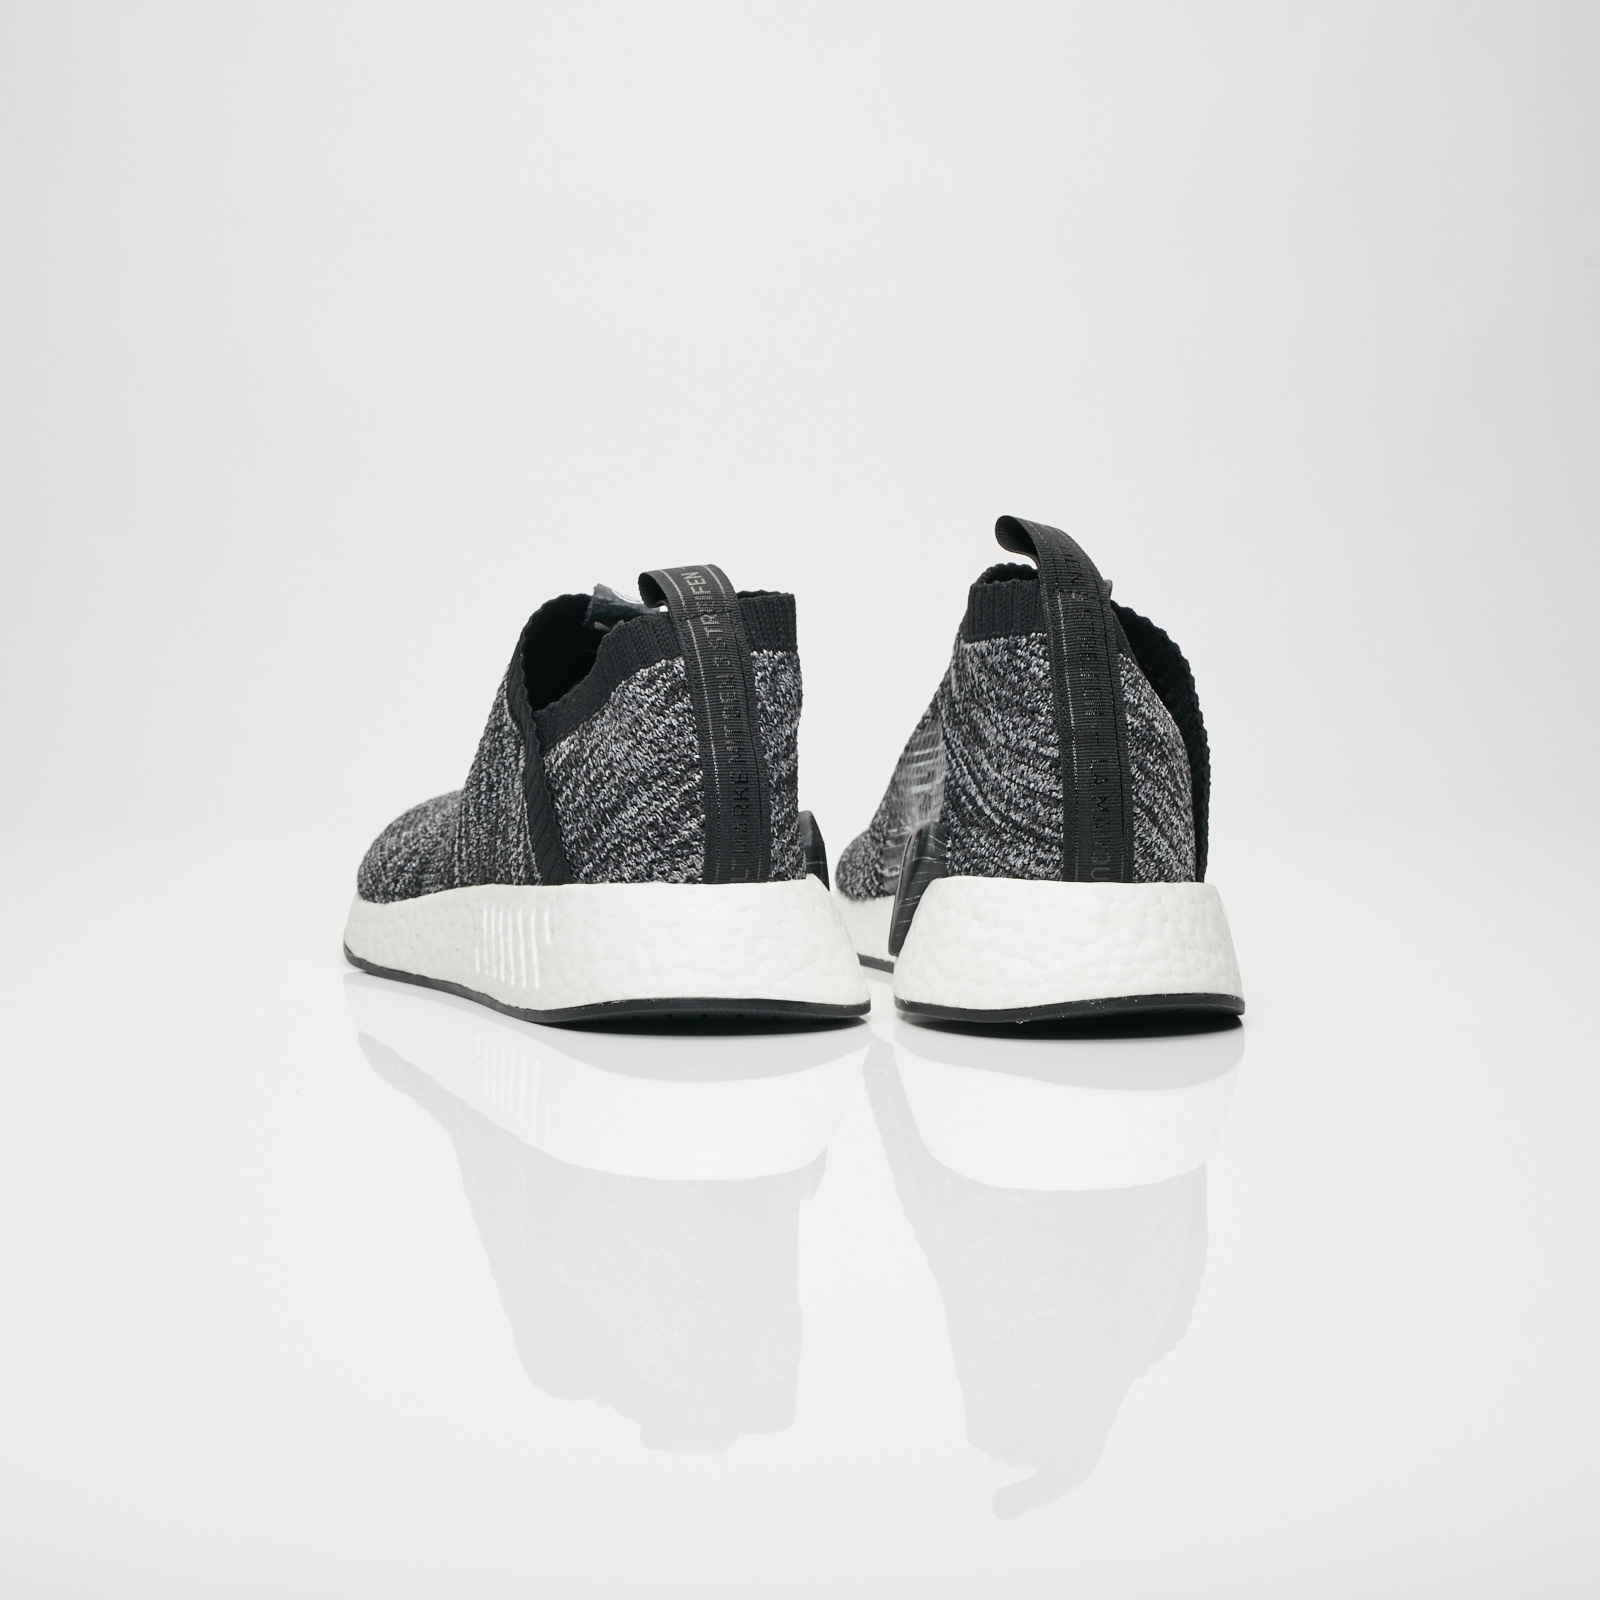 951cf8f2c502e adidas NMD CS2 PK x United Arrows   Sons - Da9089 - Sneakersnstuff ...